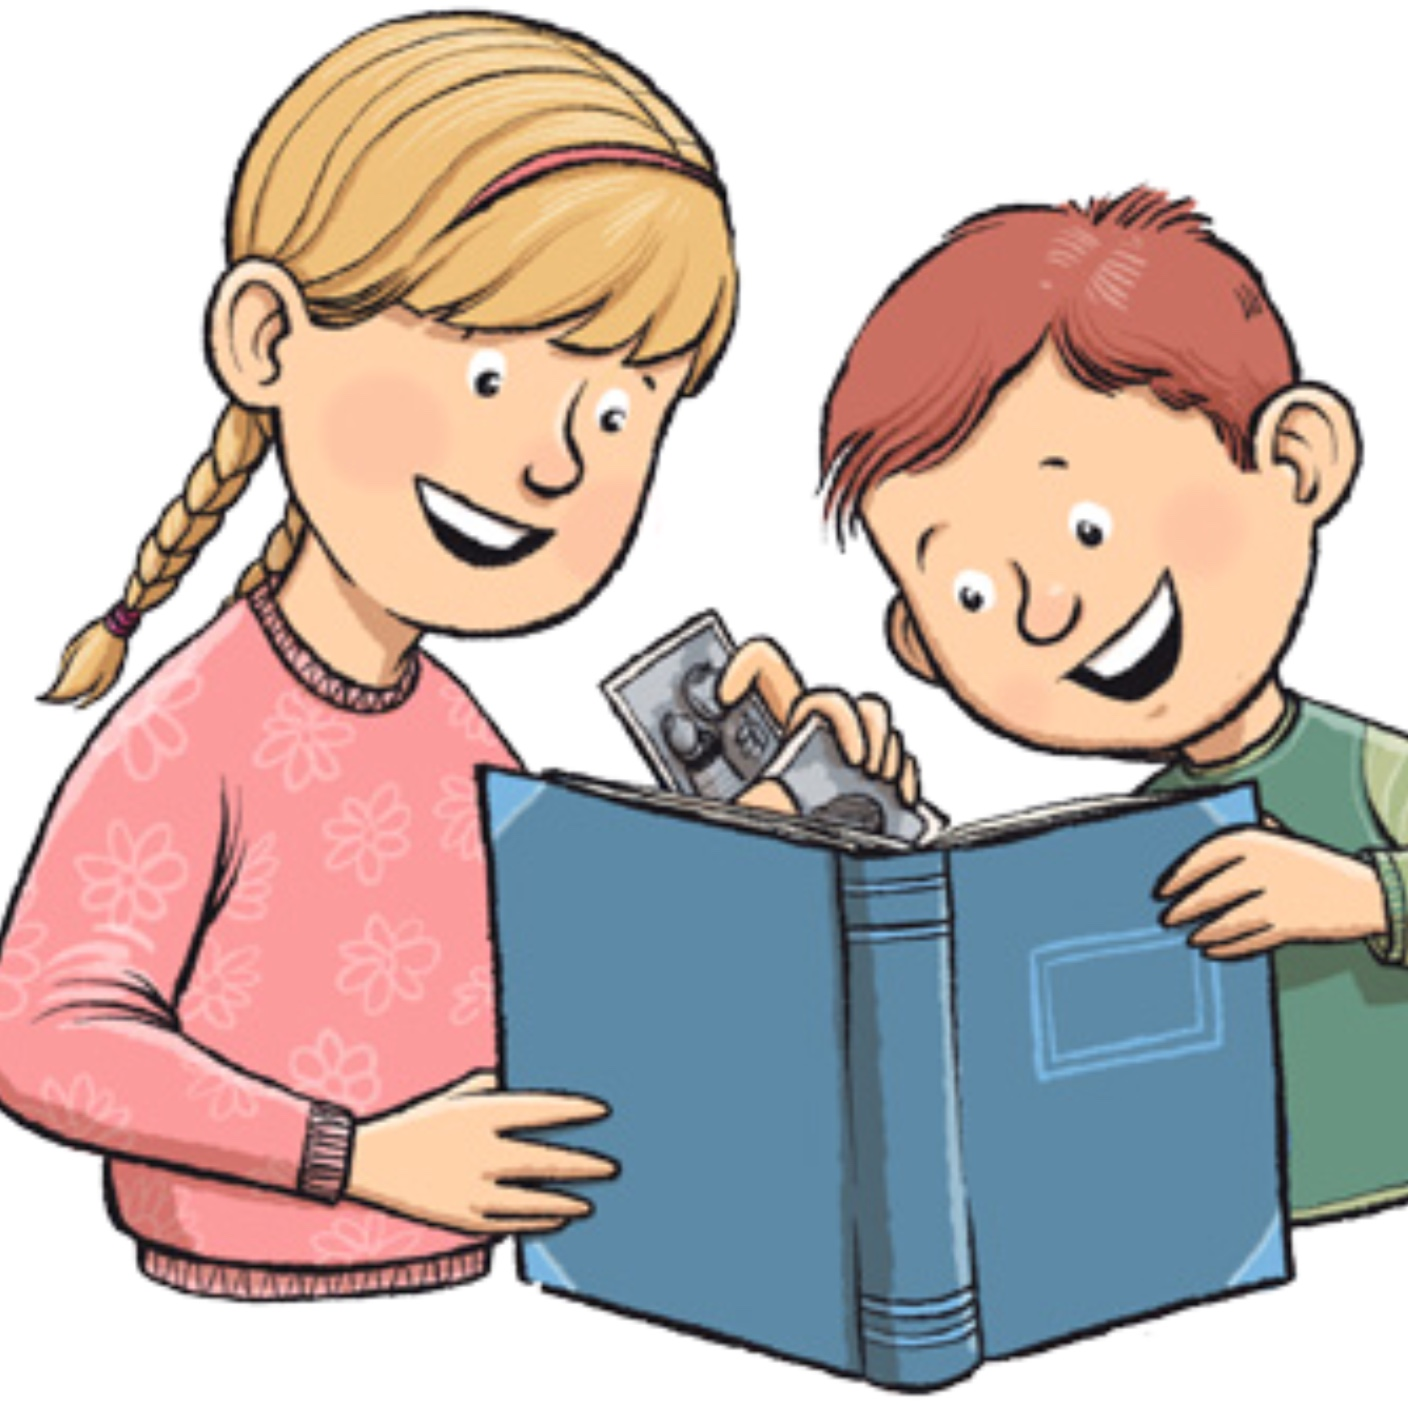 When teaching children clipart